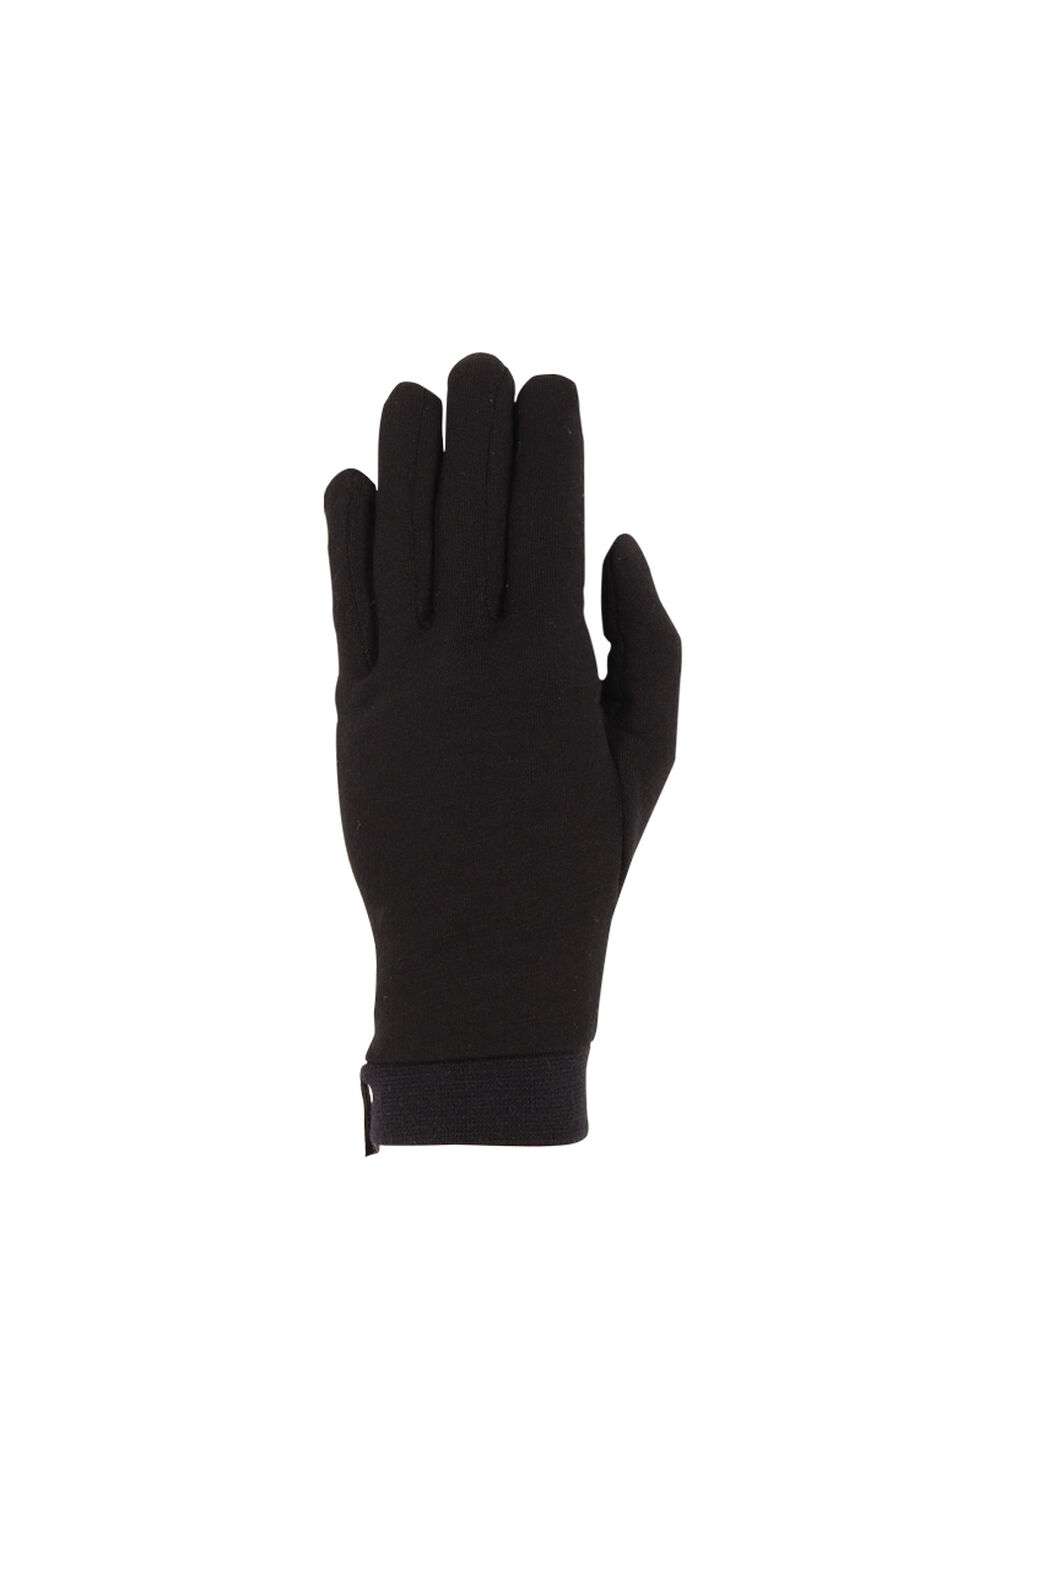 Macpac Merino Liner Gloves, Black, hi-res